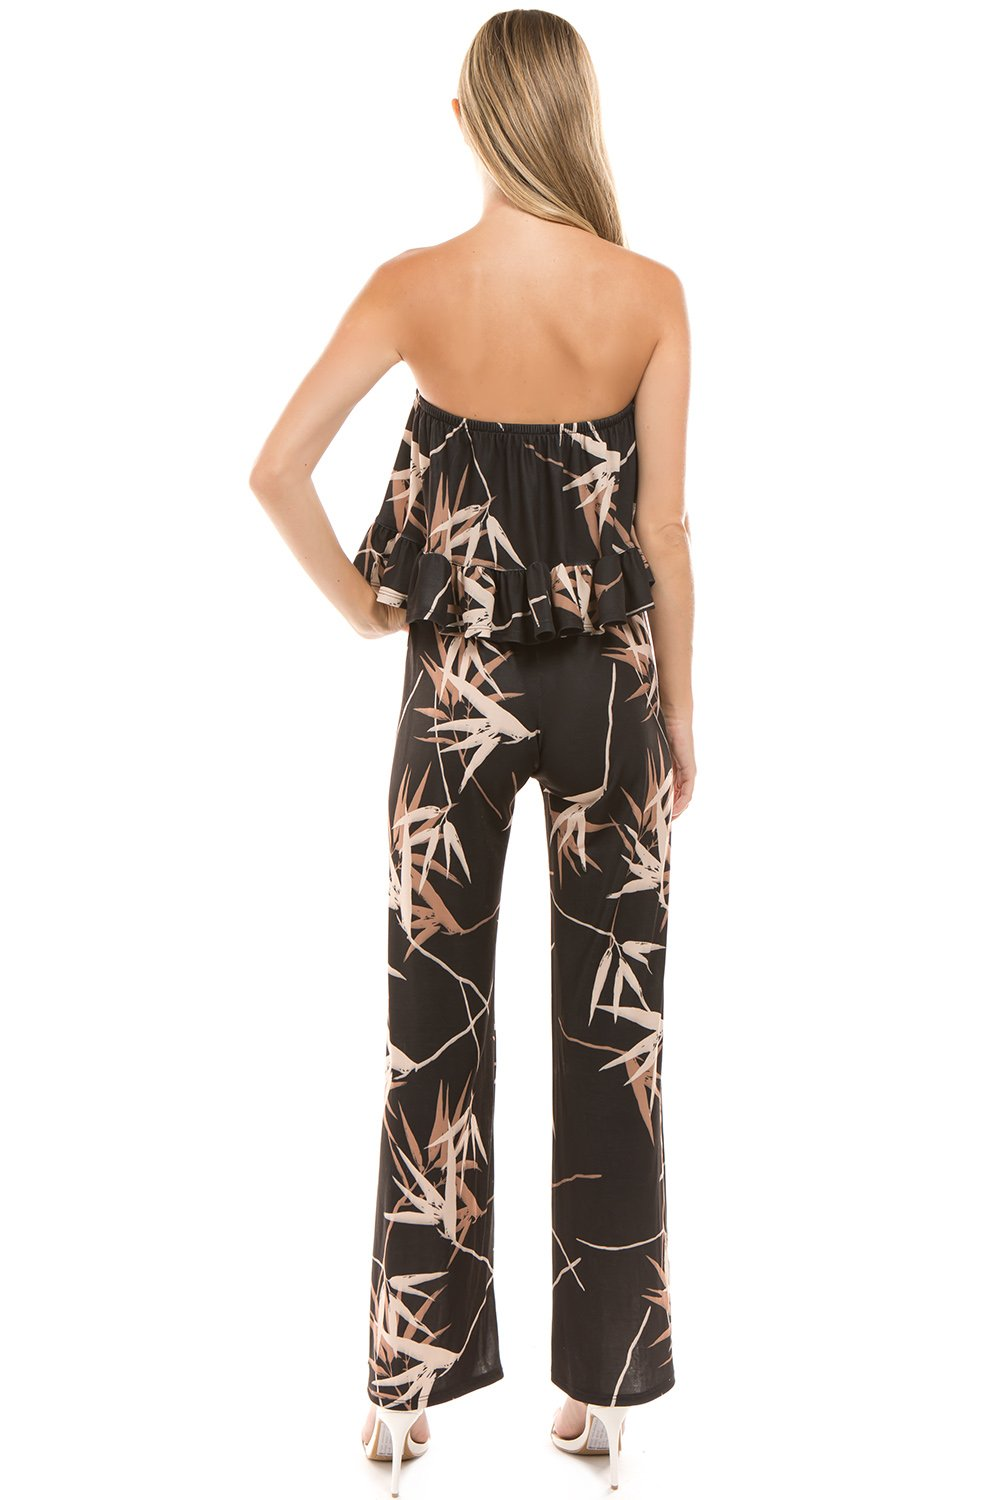 Bamboo Print Tube Top Jumpsuit